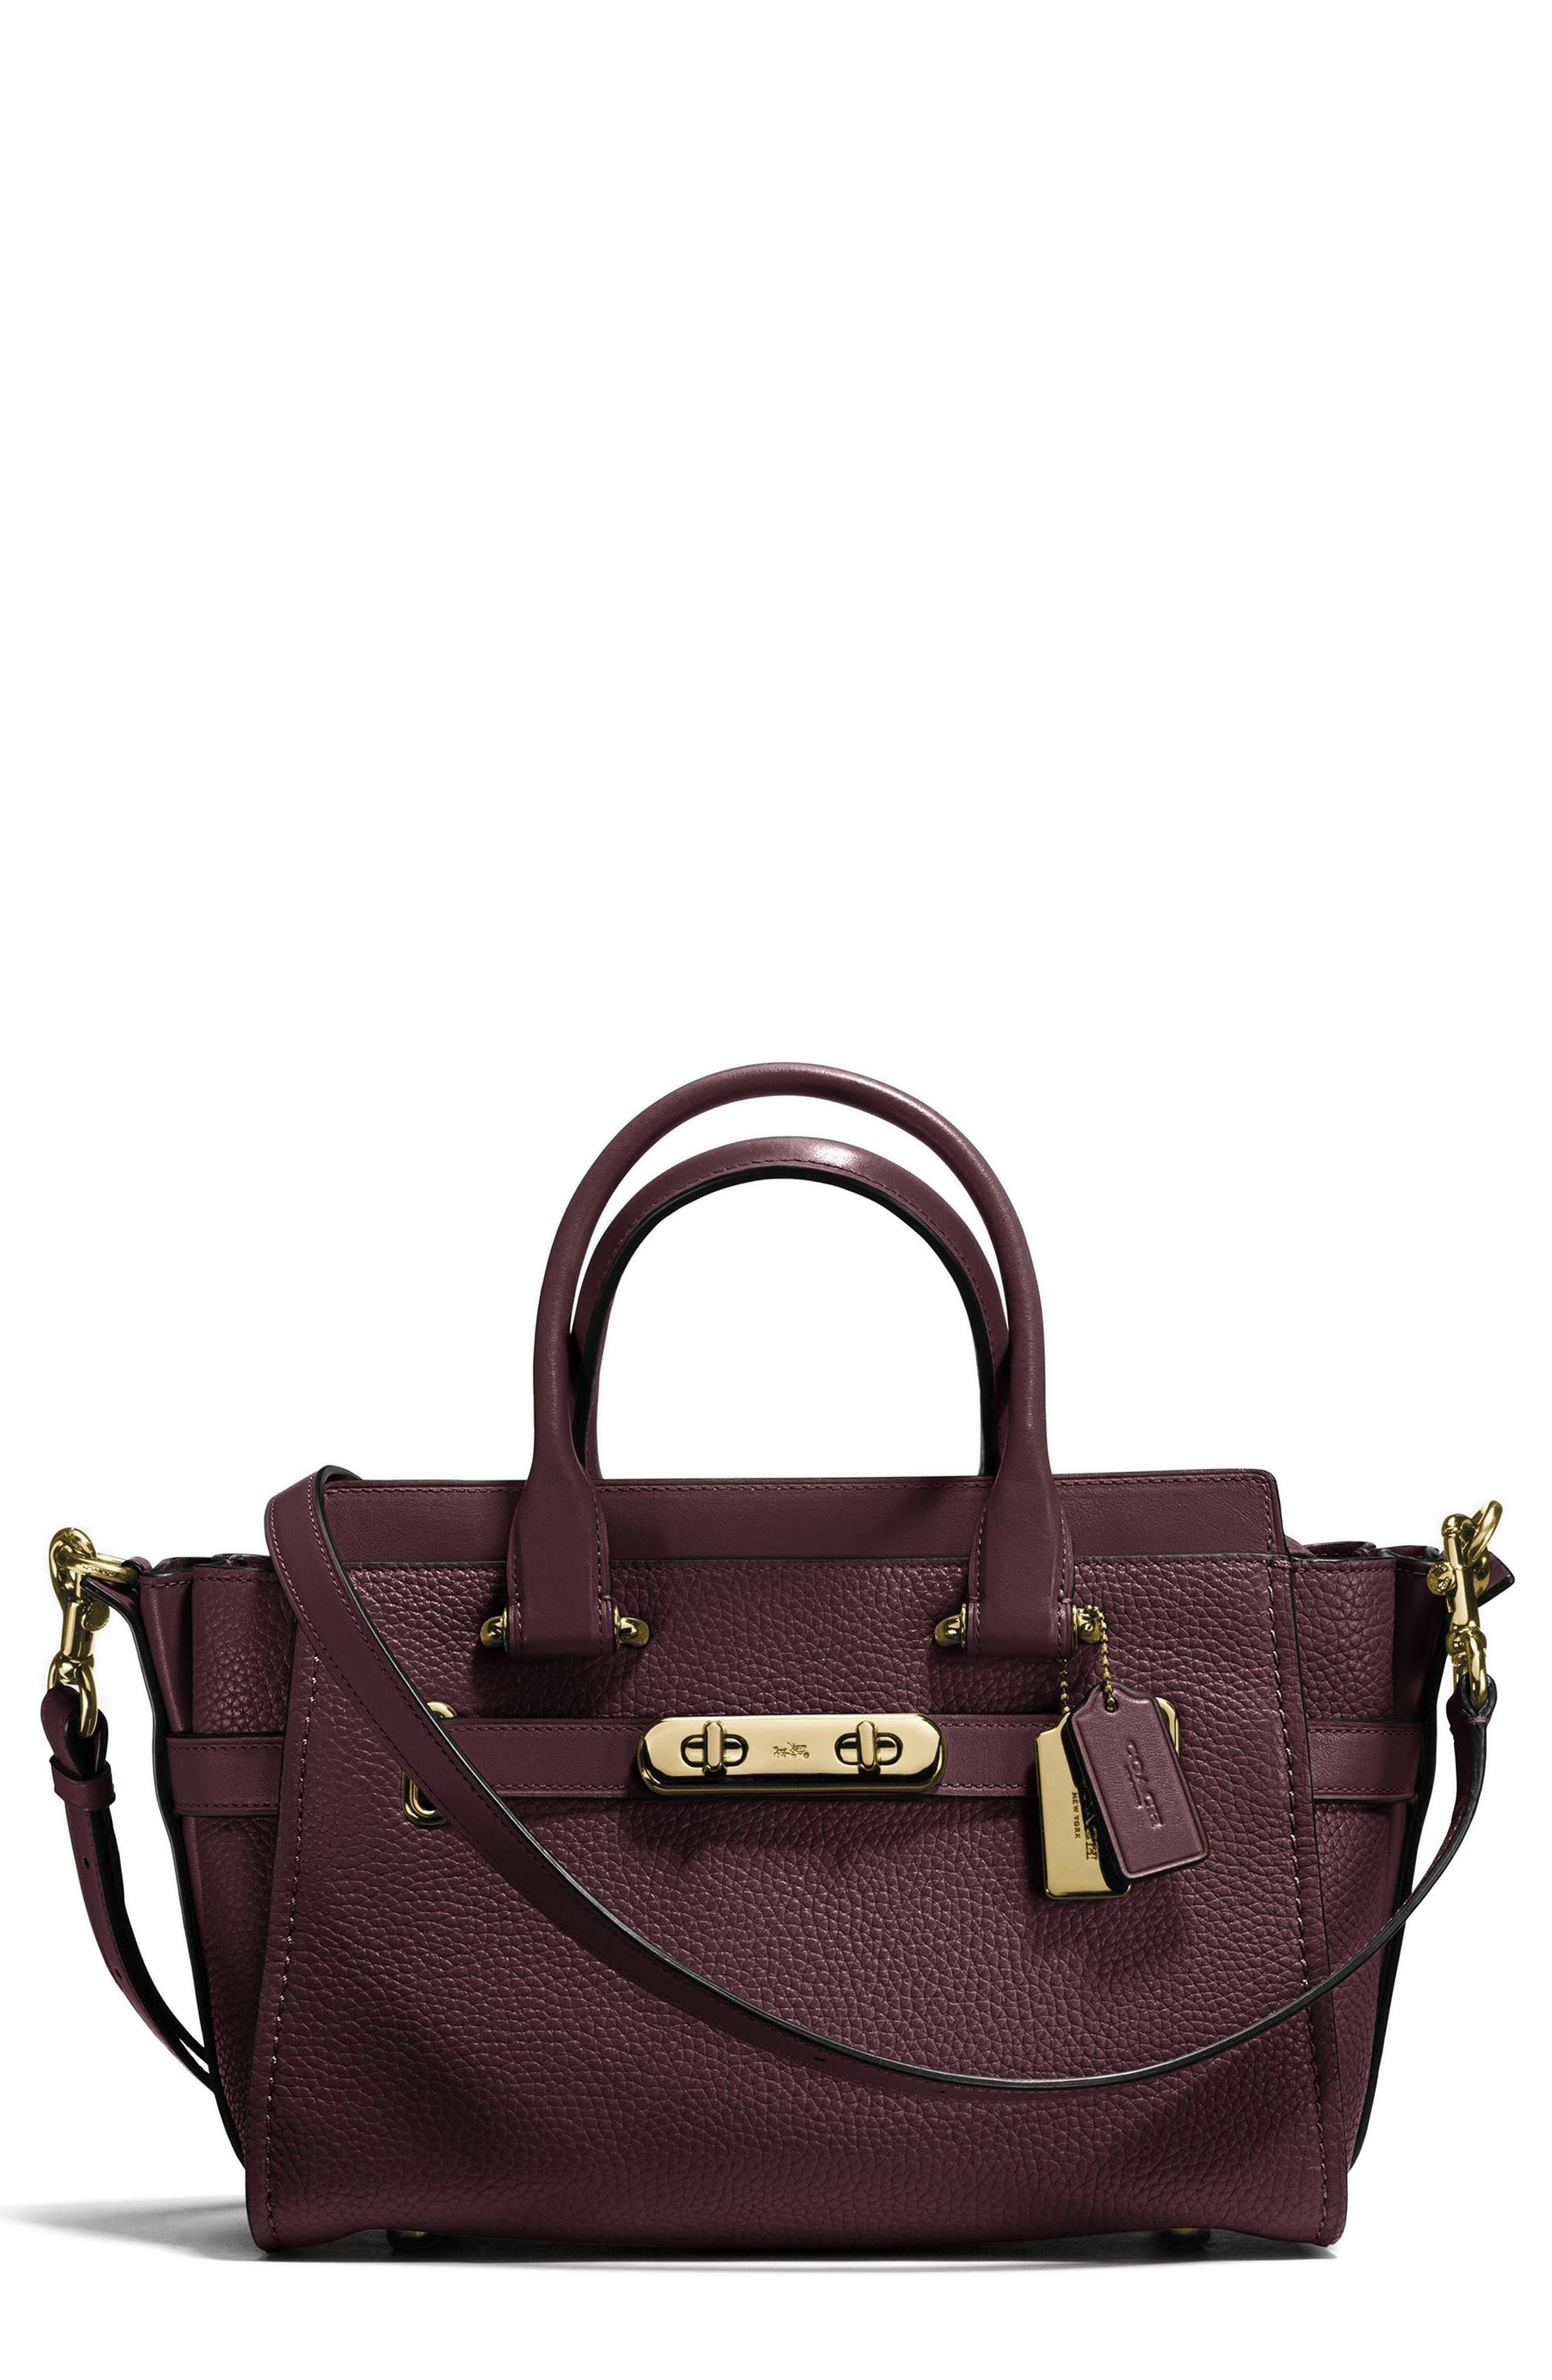 coach satchel purses   handbags nordstrom